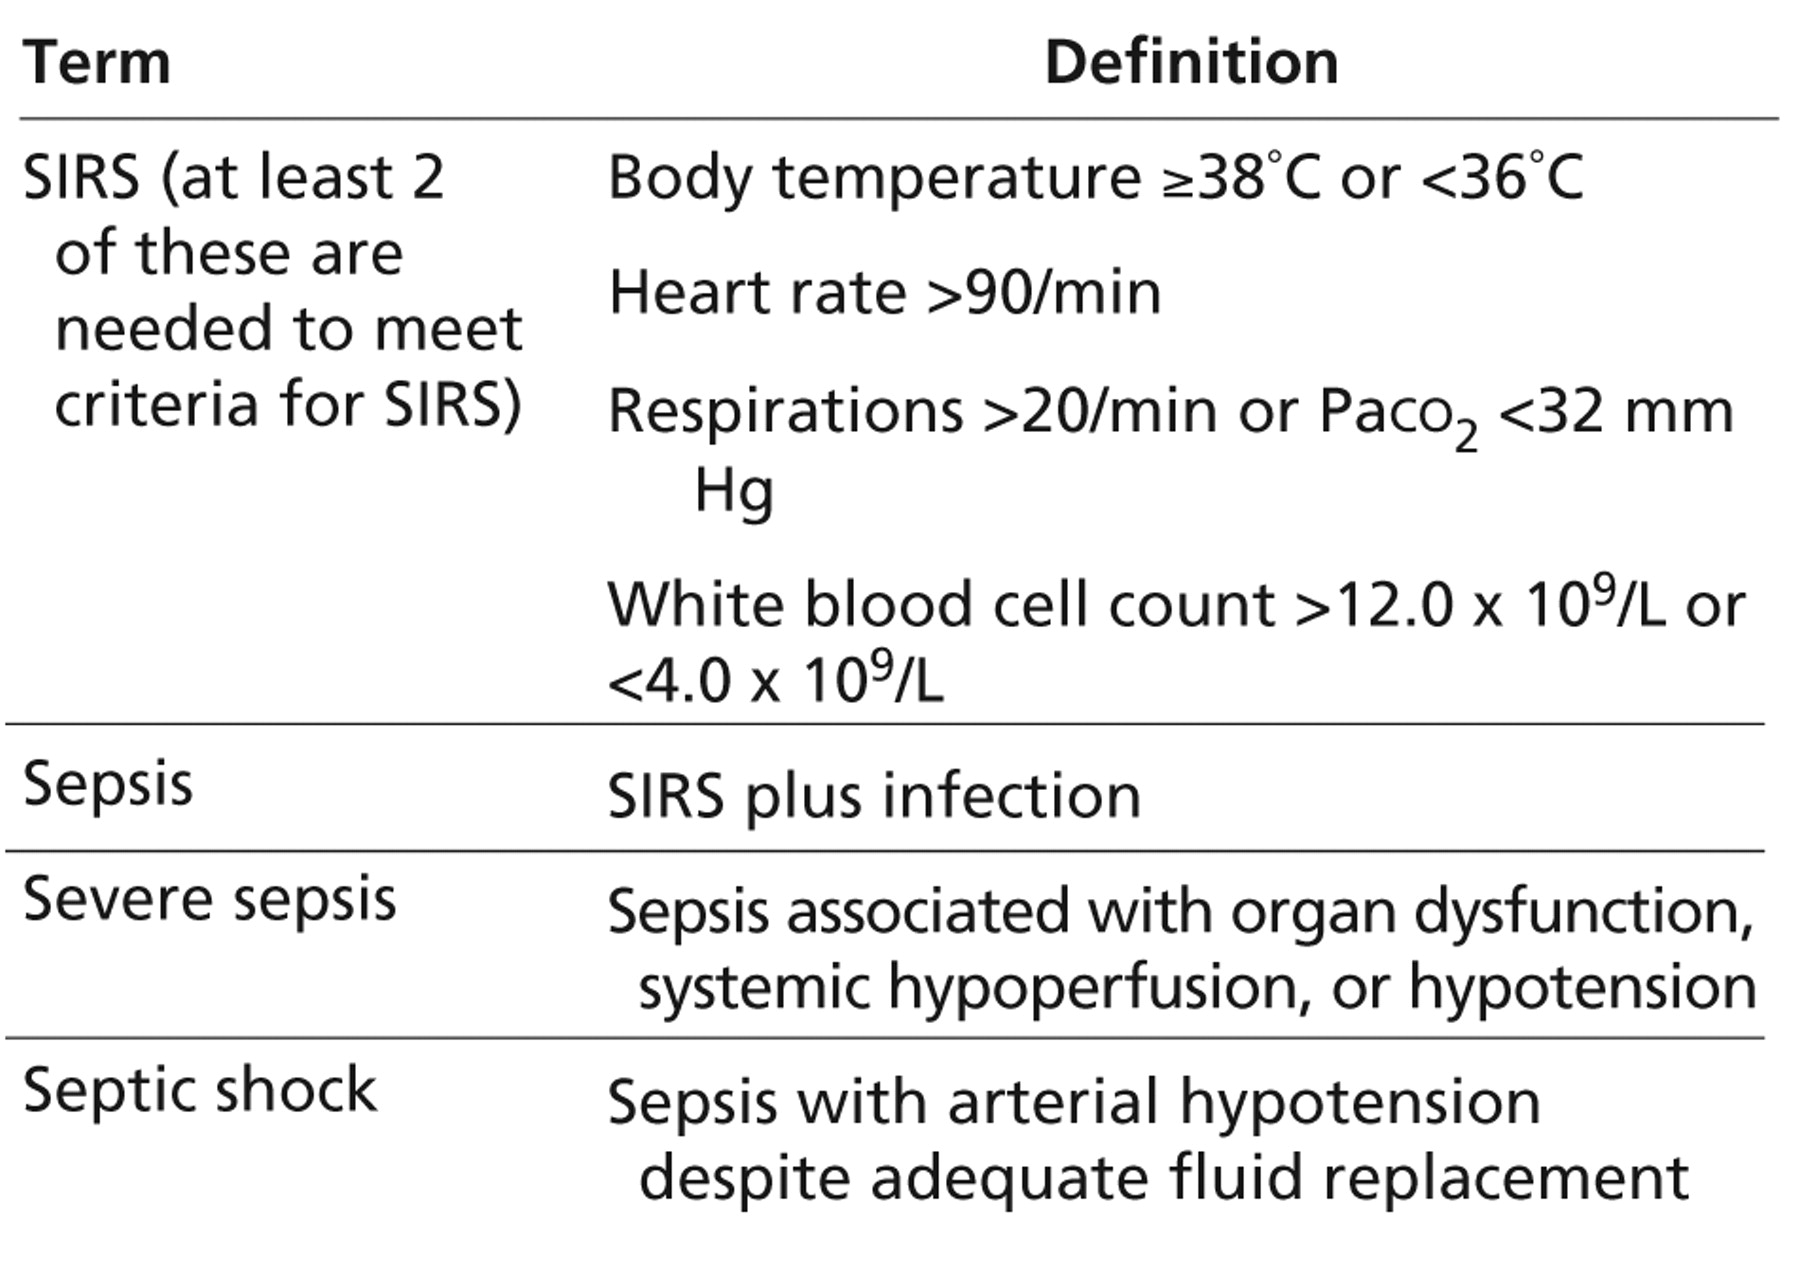 sepsis systemic inflammatory response syndrome and Septic shock may be regarded as a stage of sirs (systemic inflammatory response syndrome) if an organism cannot cope with an infection, it may lead to a systemic response - sepsis, which may further progress to severe sepsis, septic shock, organ failure, and eventually.